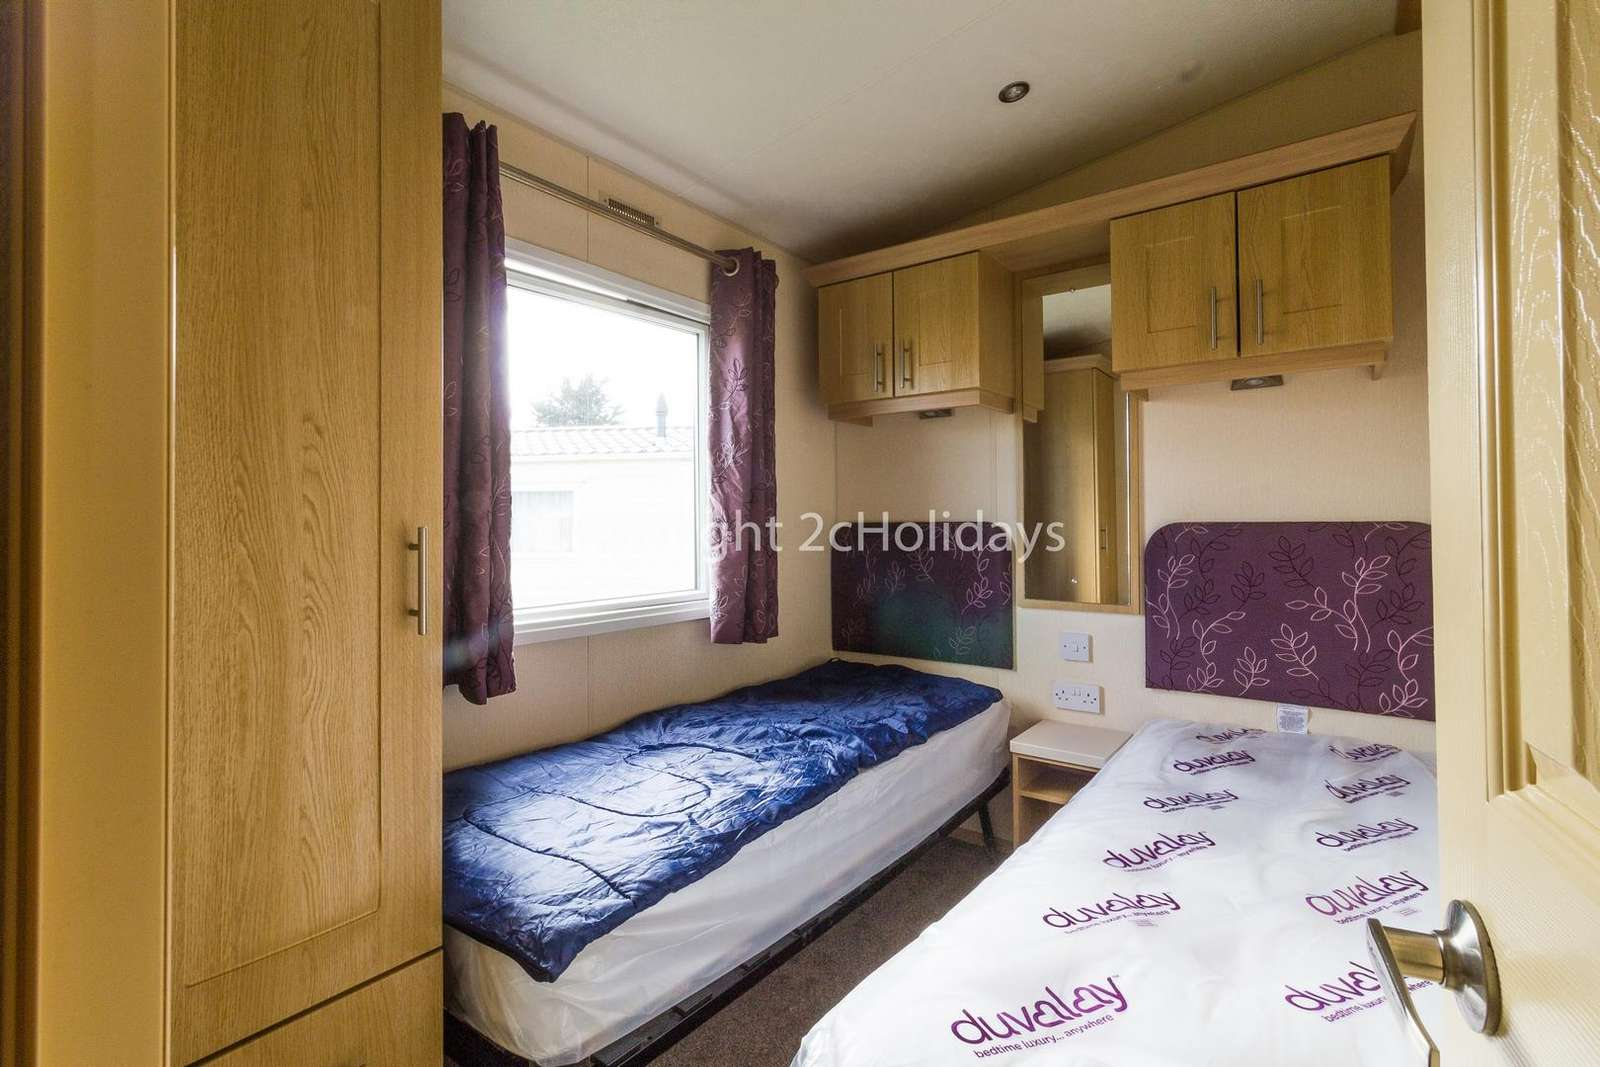 You can find plenty of storage in this twin bedroom